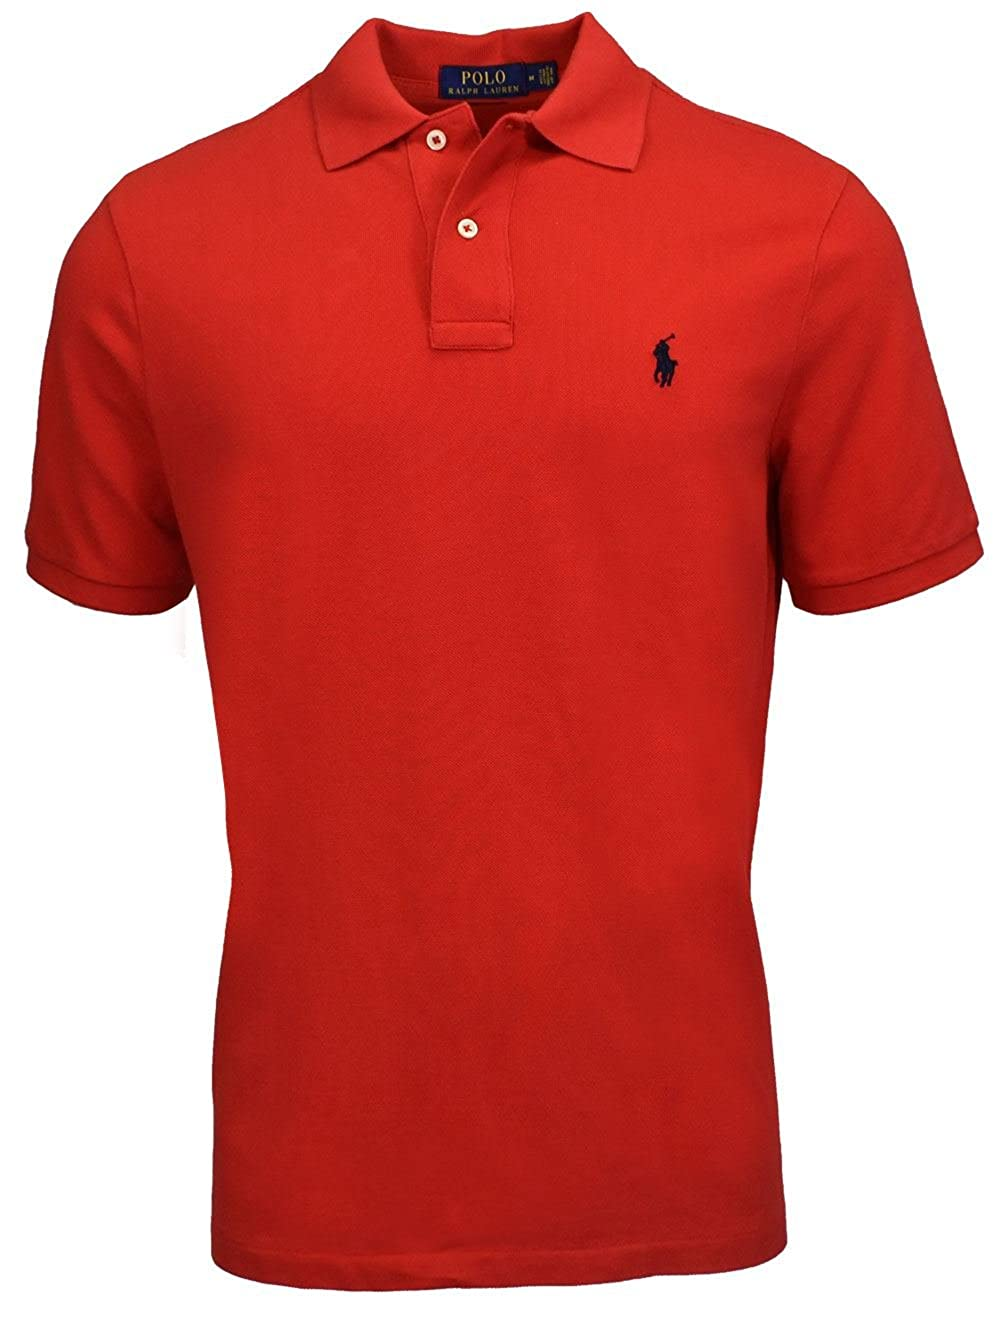 Polo Ralph Lauren- Classic Fit Mesh Polo